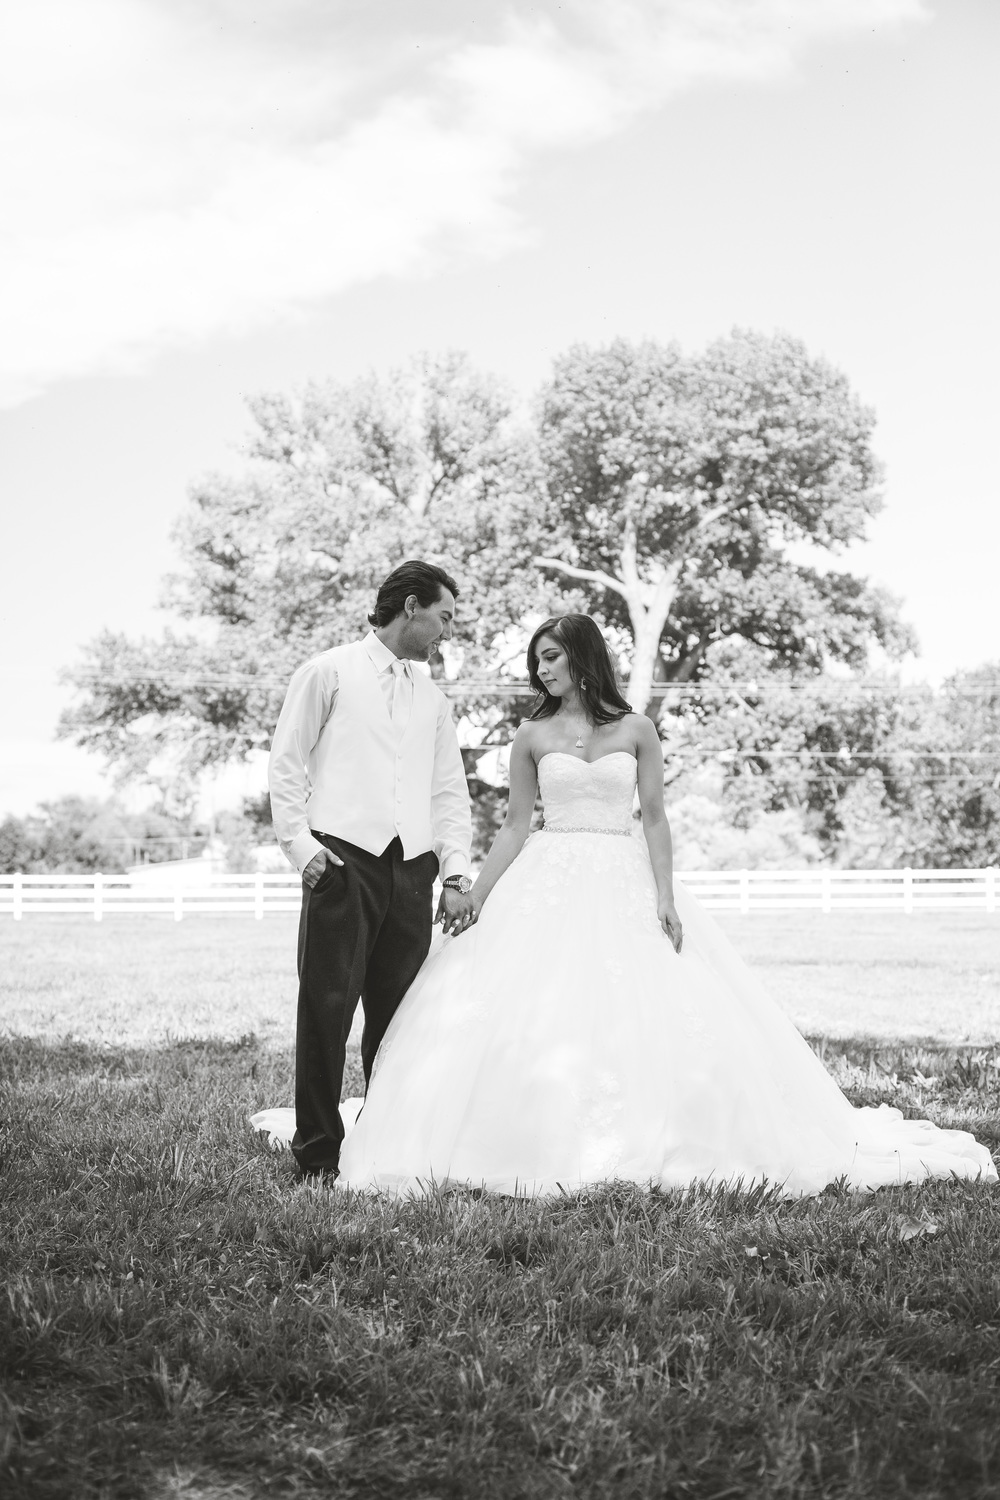 Farmington, NM // Durango, CO // Wedding Photography // Eden Fine Photography // Jonny and Shembra